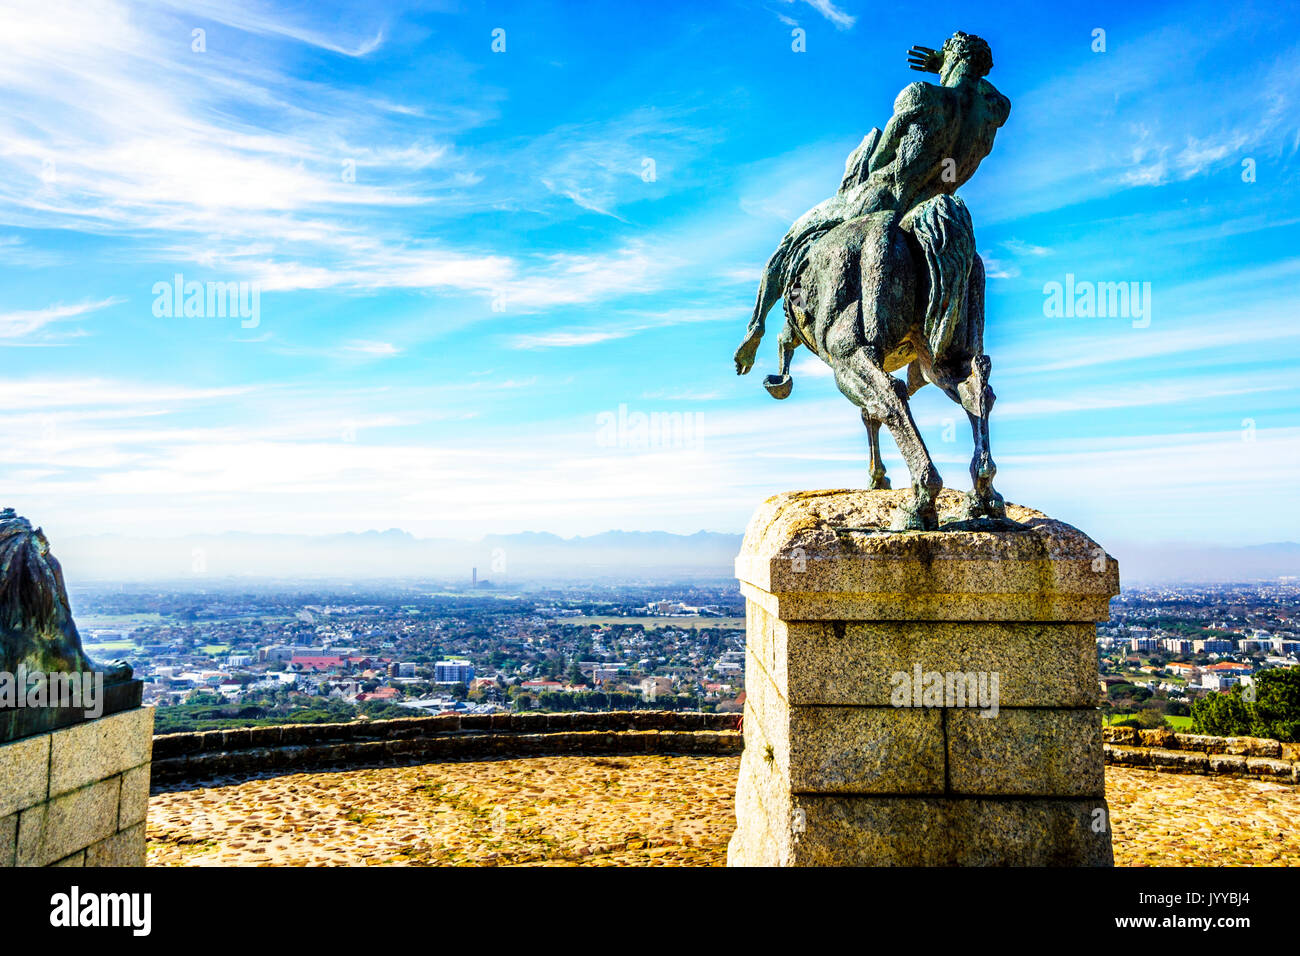 Bronze statue of Cecil Rhodes overlooking Cape Peninsula from the slopes of Table Mountain at Cape Town South Africa Stock Photo